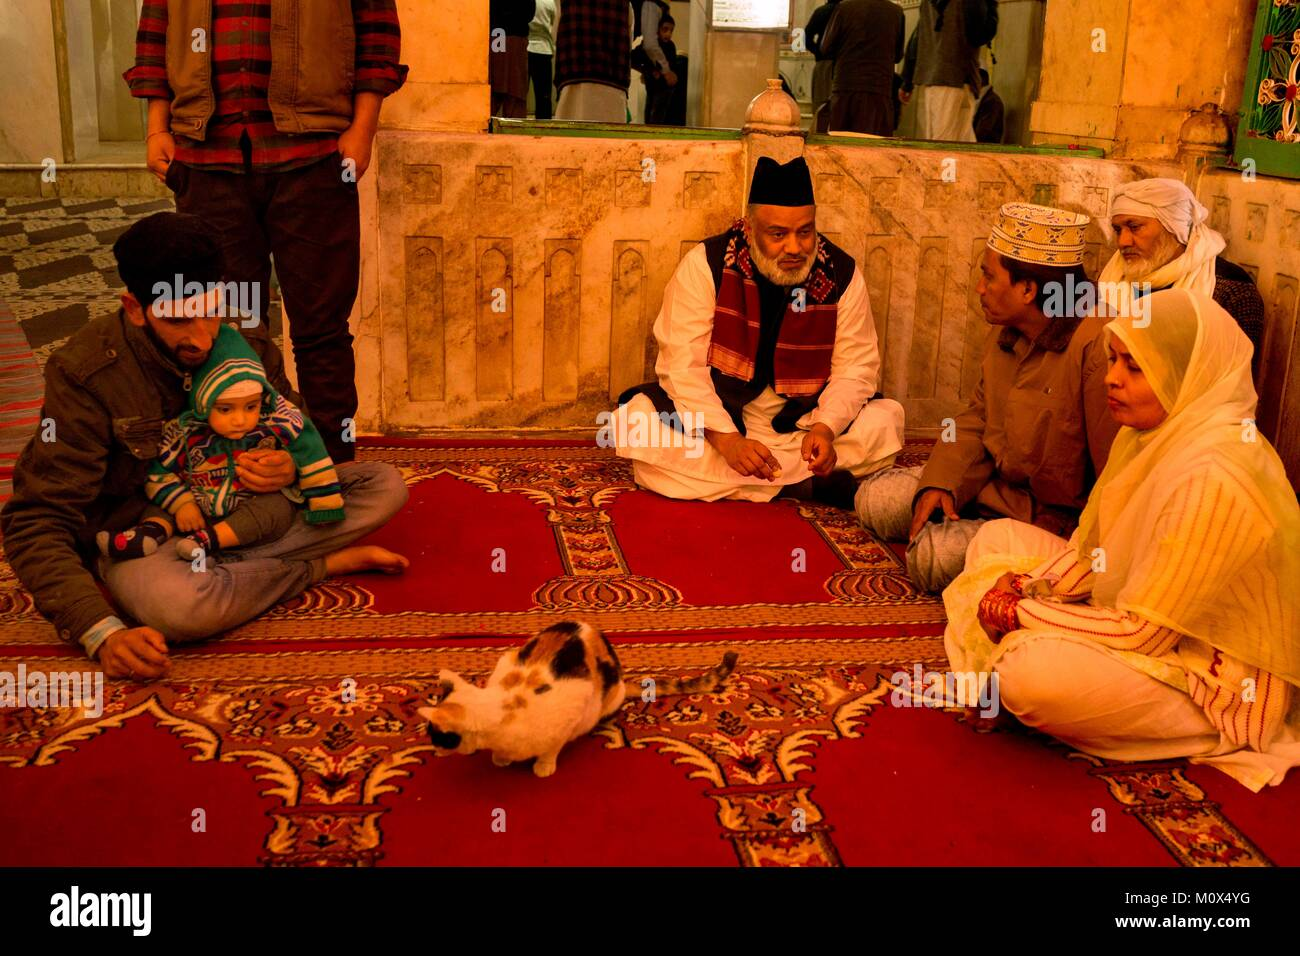 India,Rajasthan,Ajmer,Ajmer Sharif,Haji Syed Salman Chishty who is the founder and director of Chishty Foundation,married - Stock Image